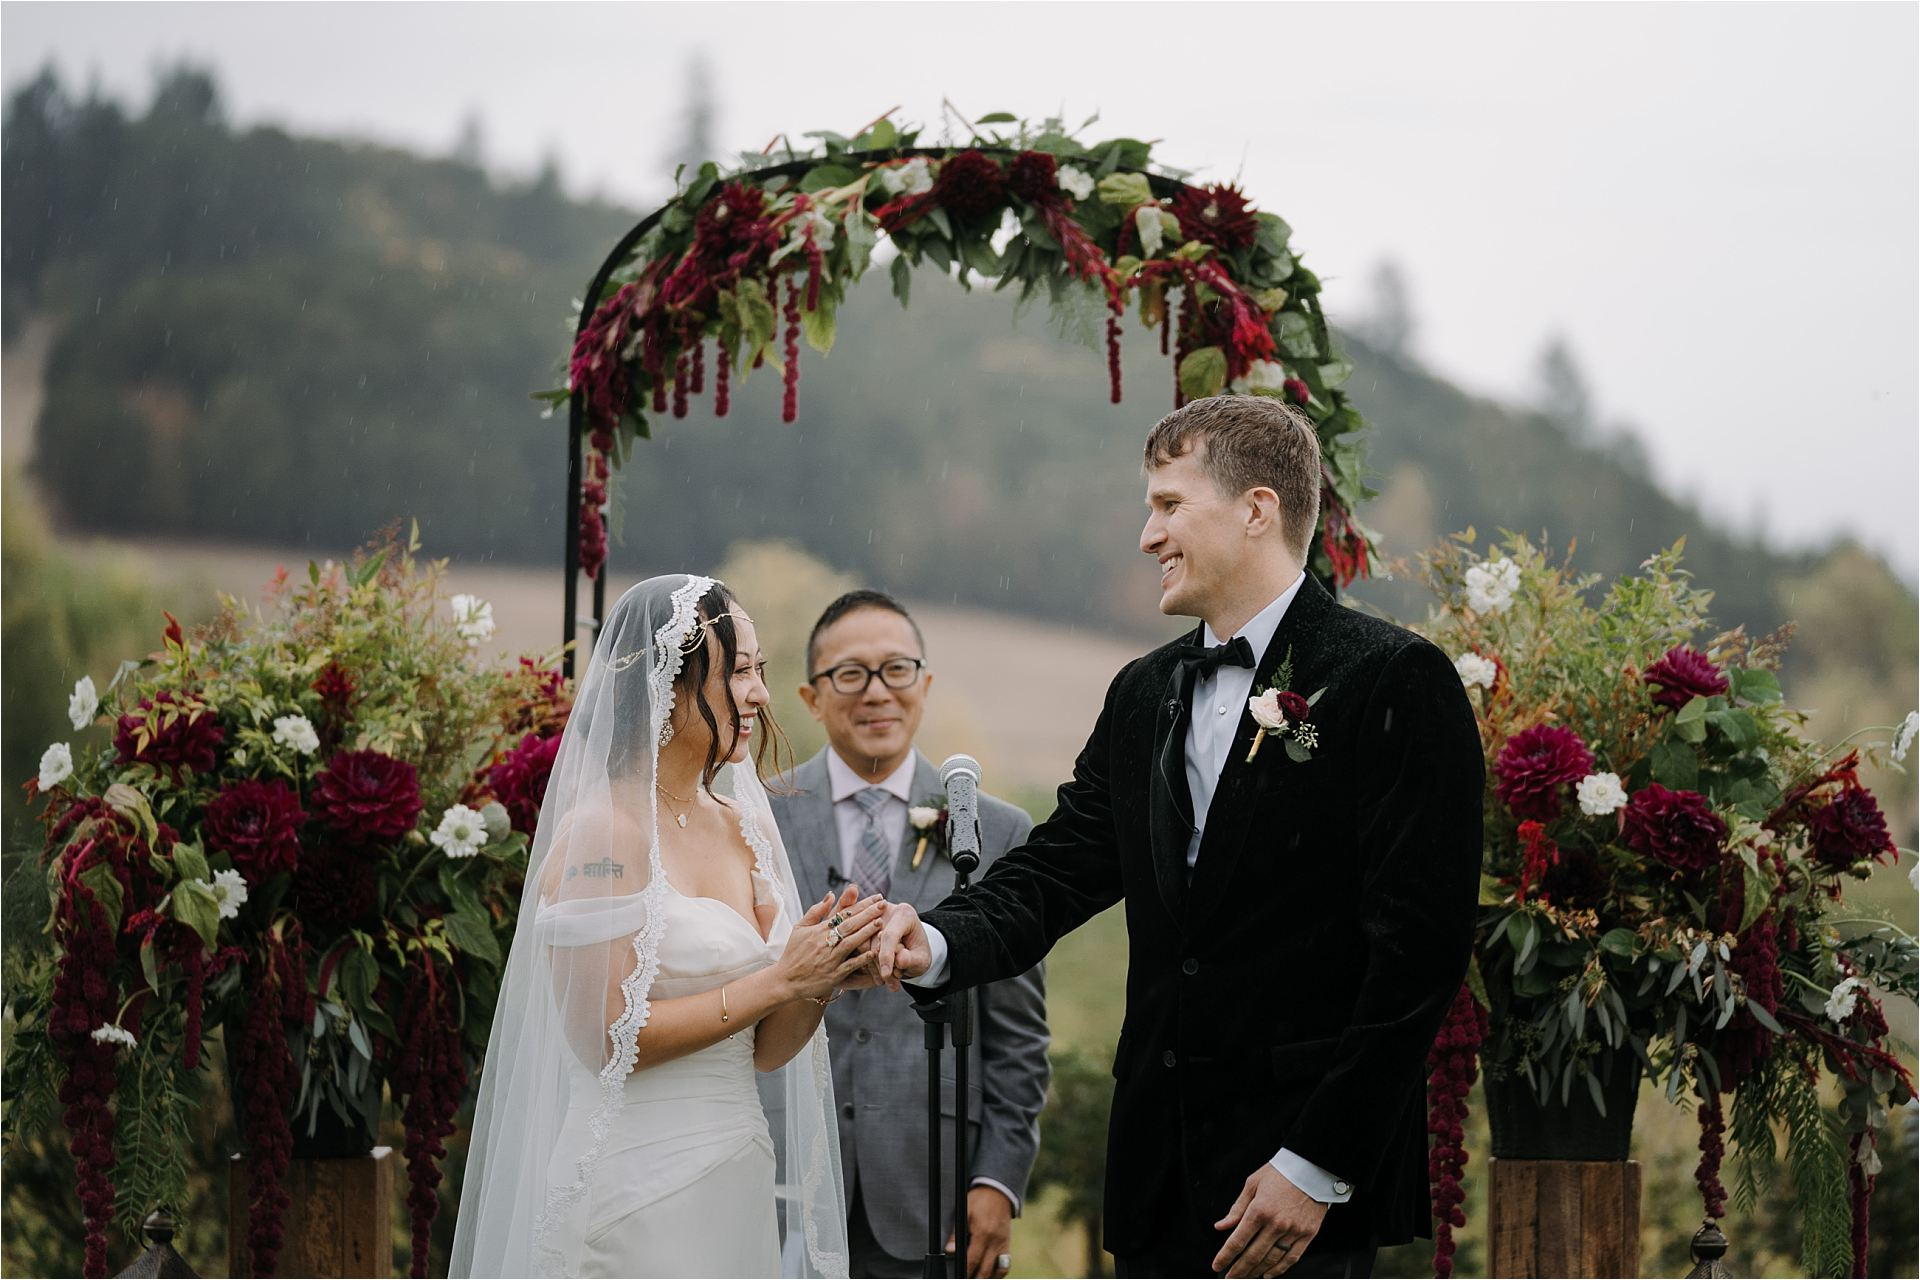 Bride and groom laughing during zenith vineyard wedding